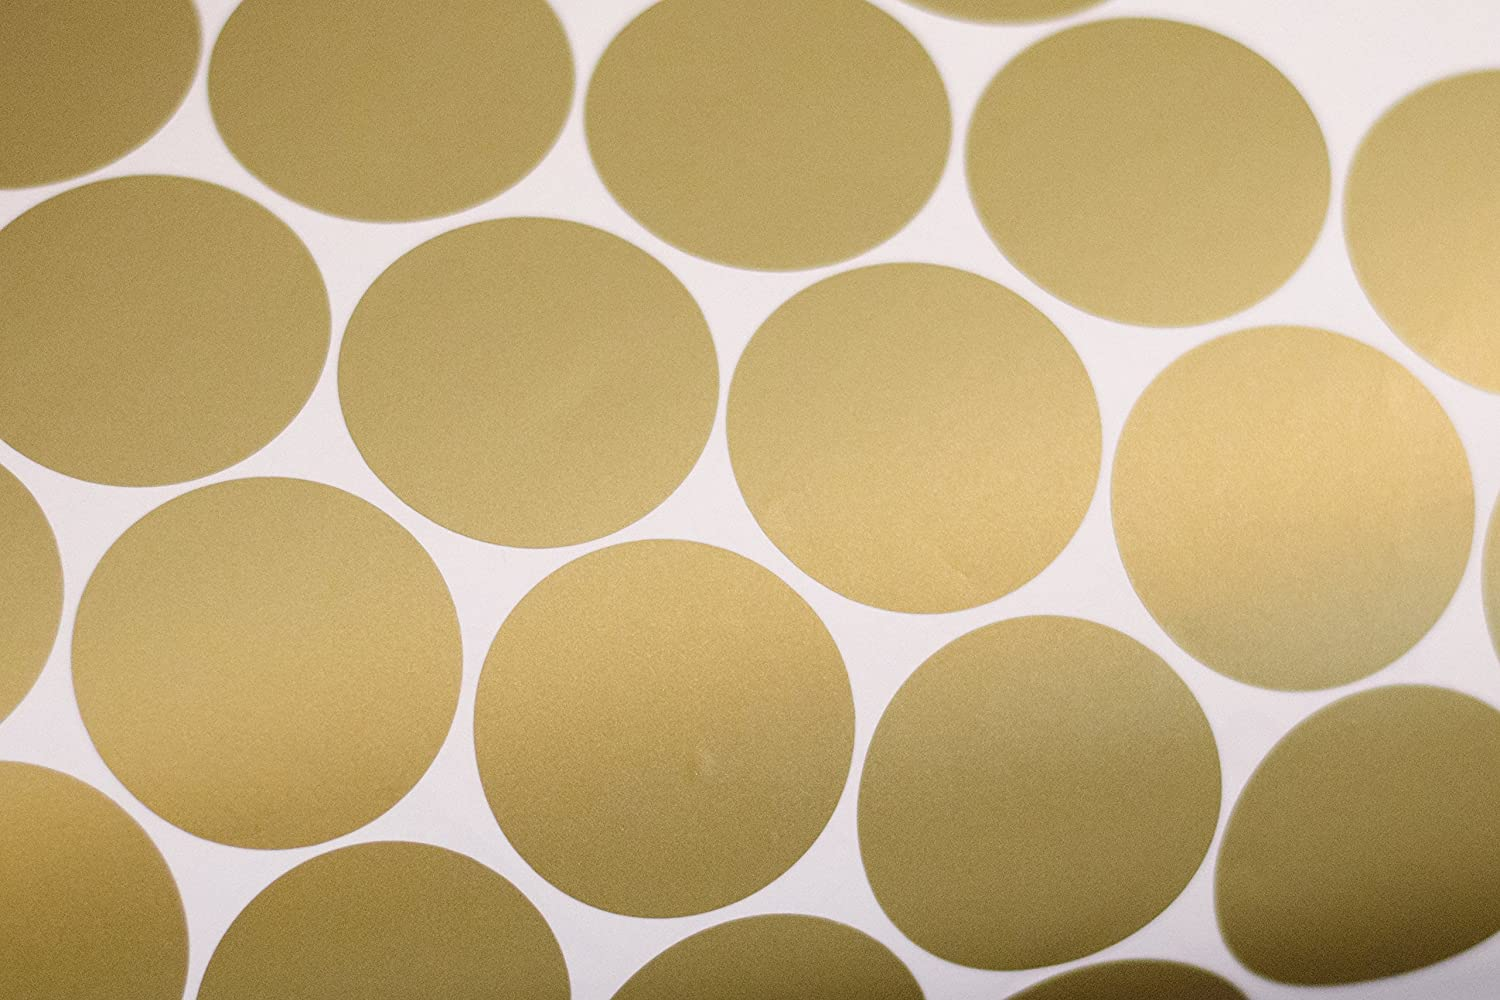 Amazon.com: Gold Wall Decal Dots (200 Decals) | Easy to Peel Easy to ...